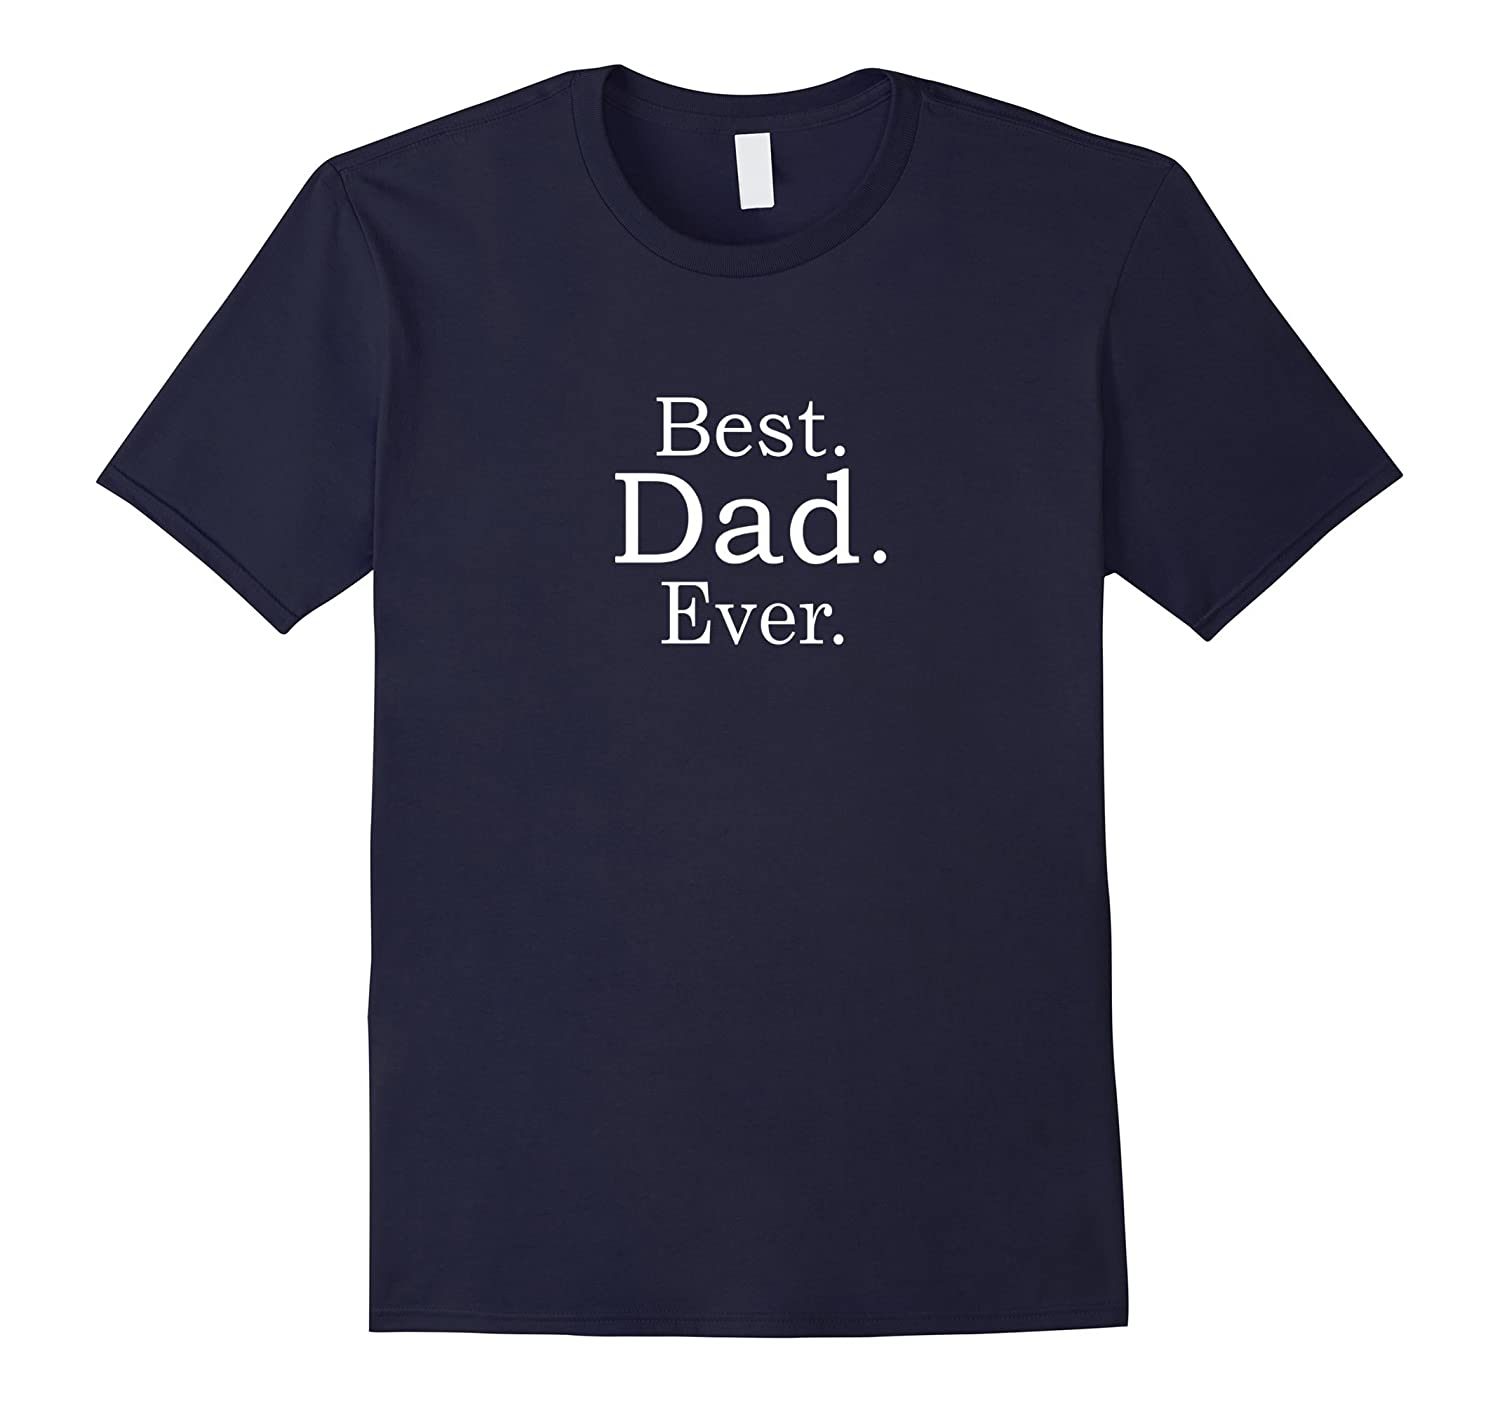 Best Dad Ever Cool T-Shirt For Fathers Day-TH